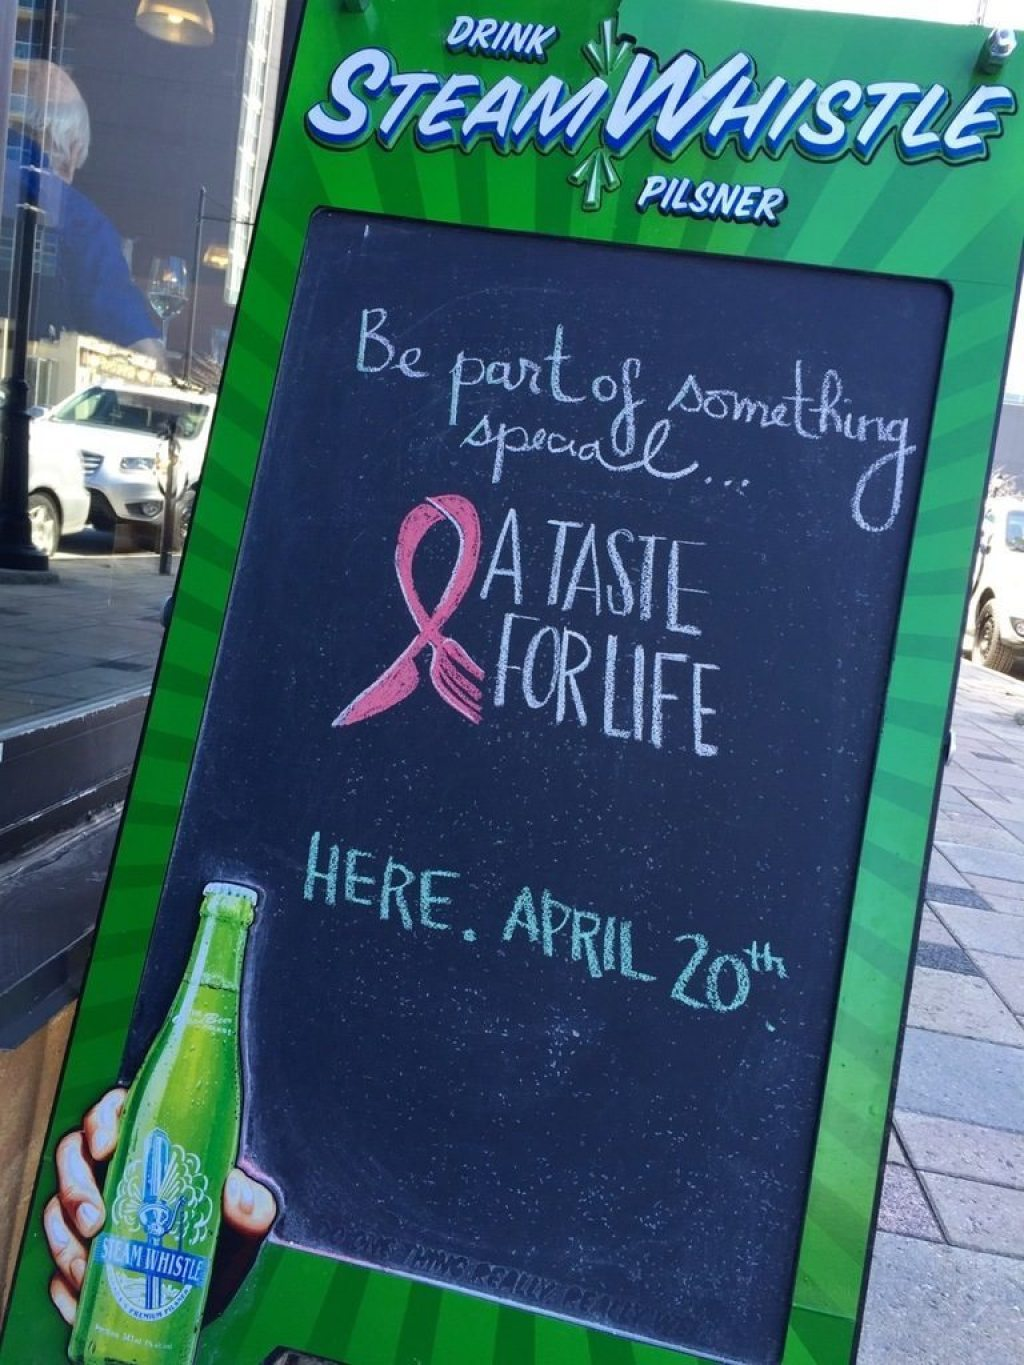 Sidewalk sign outside absinthe café